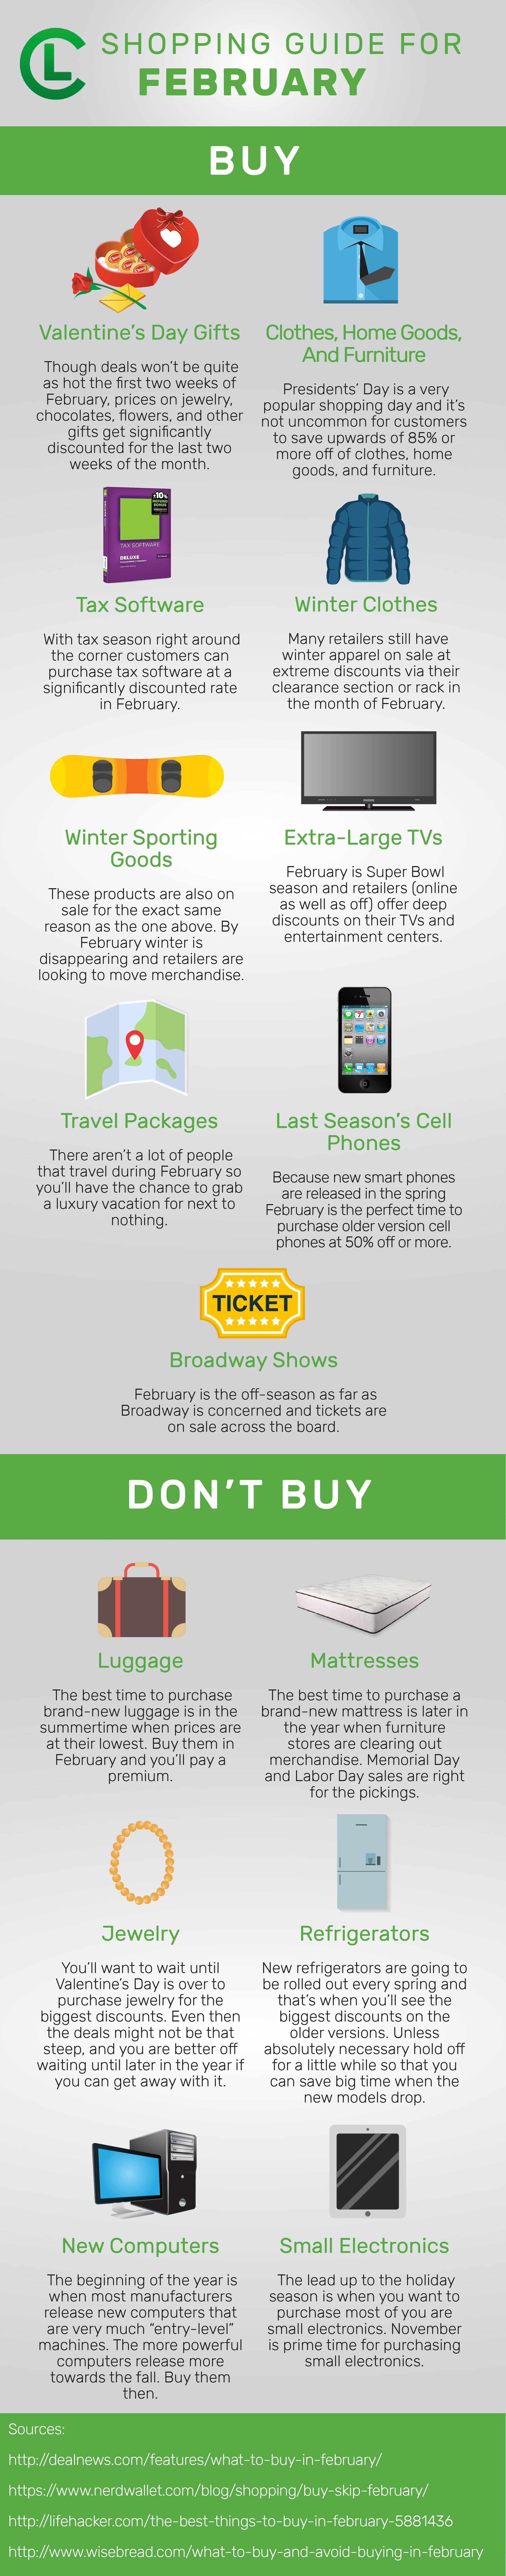 Shopping Guide For February Infographic